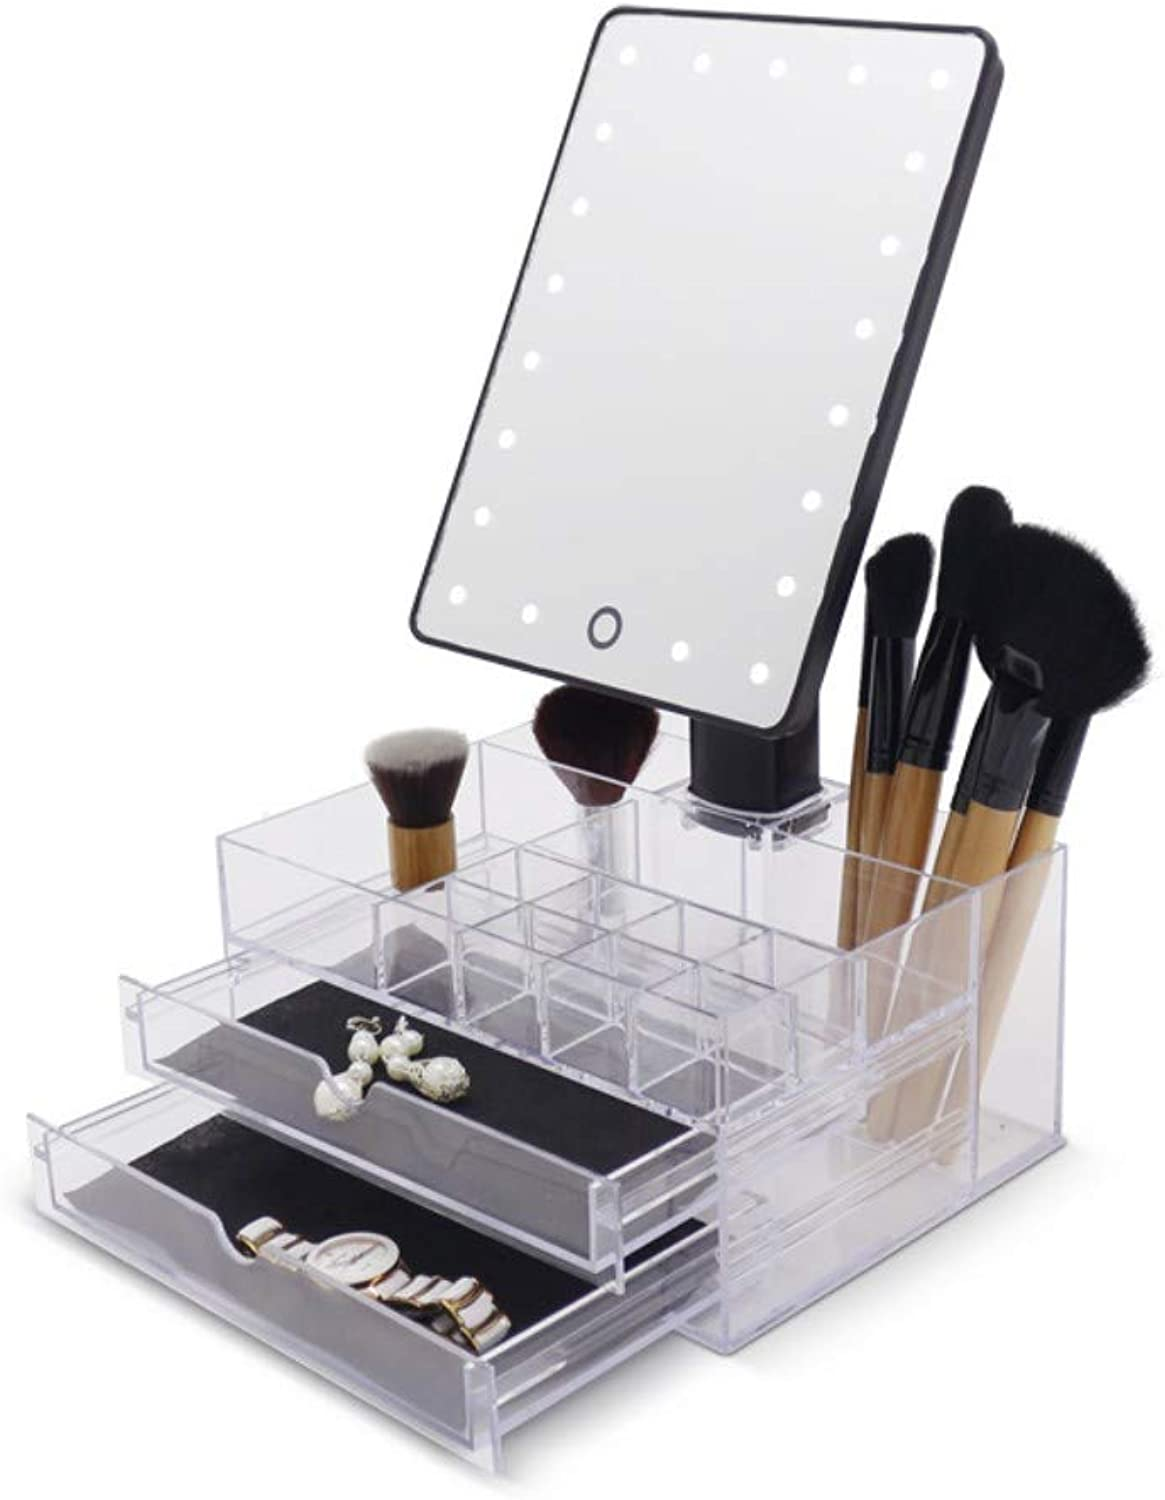 LED makeup mirror desktop touch multi-function storage combination makeup mirror dressing table finishing artifact